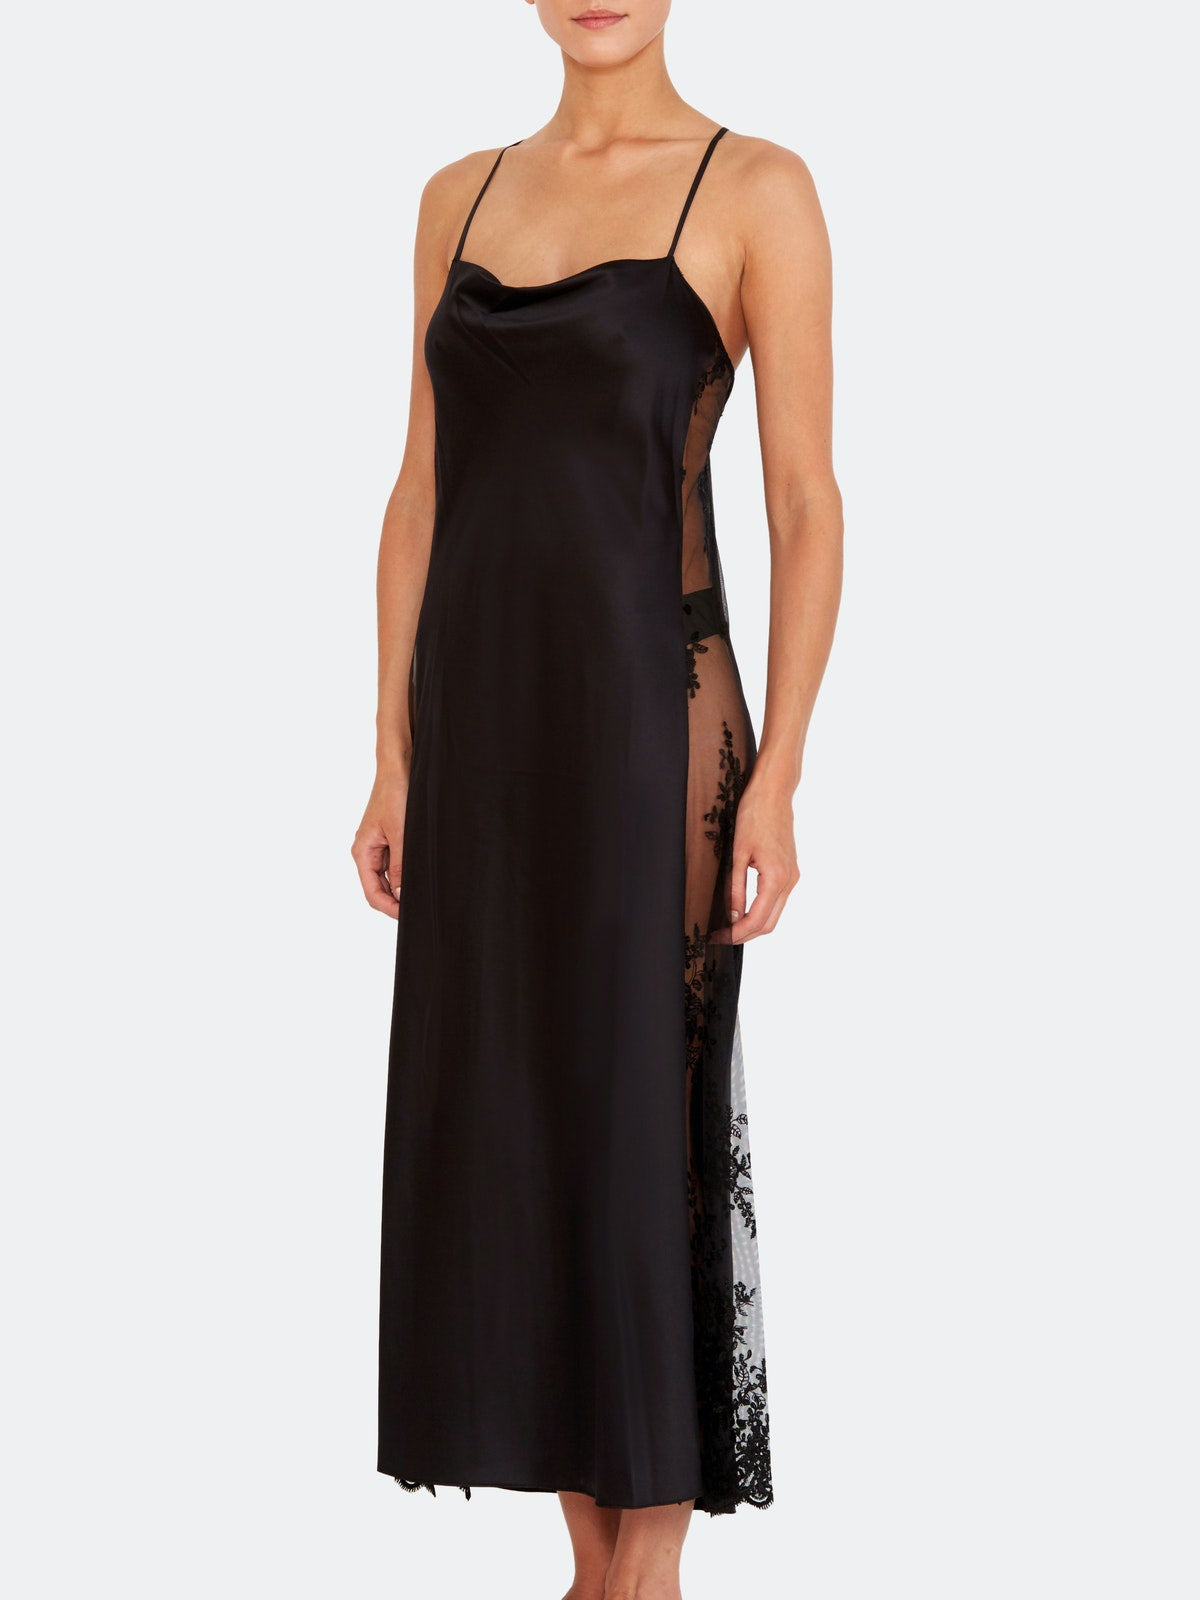 219 Darling Gown |BLACK|